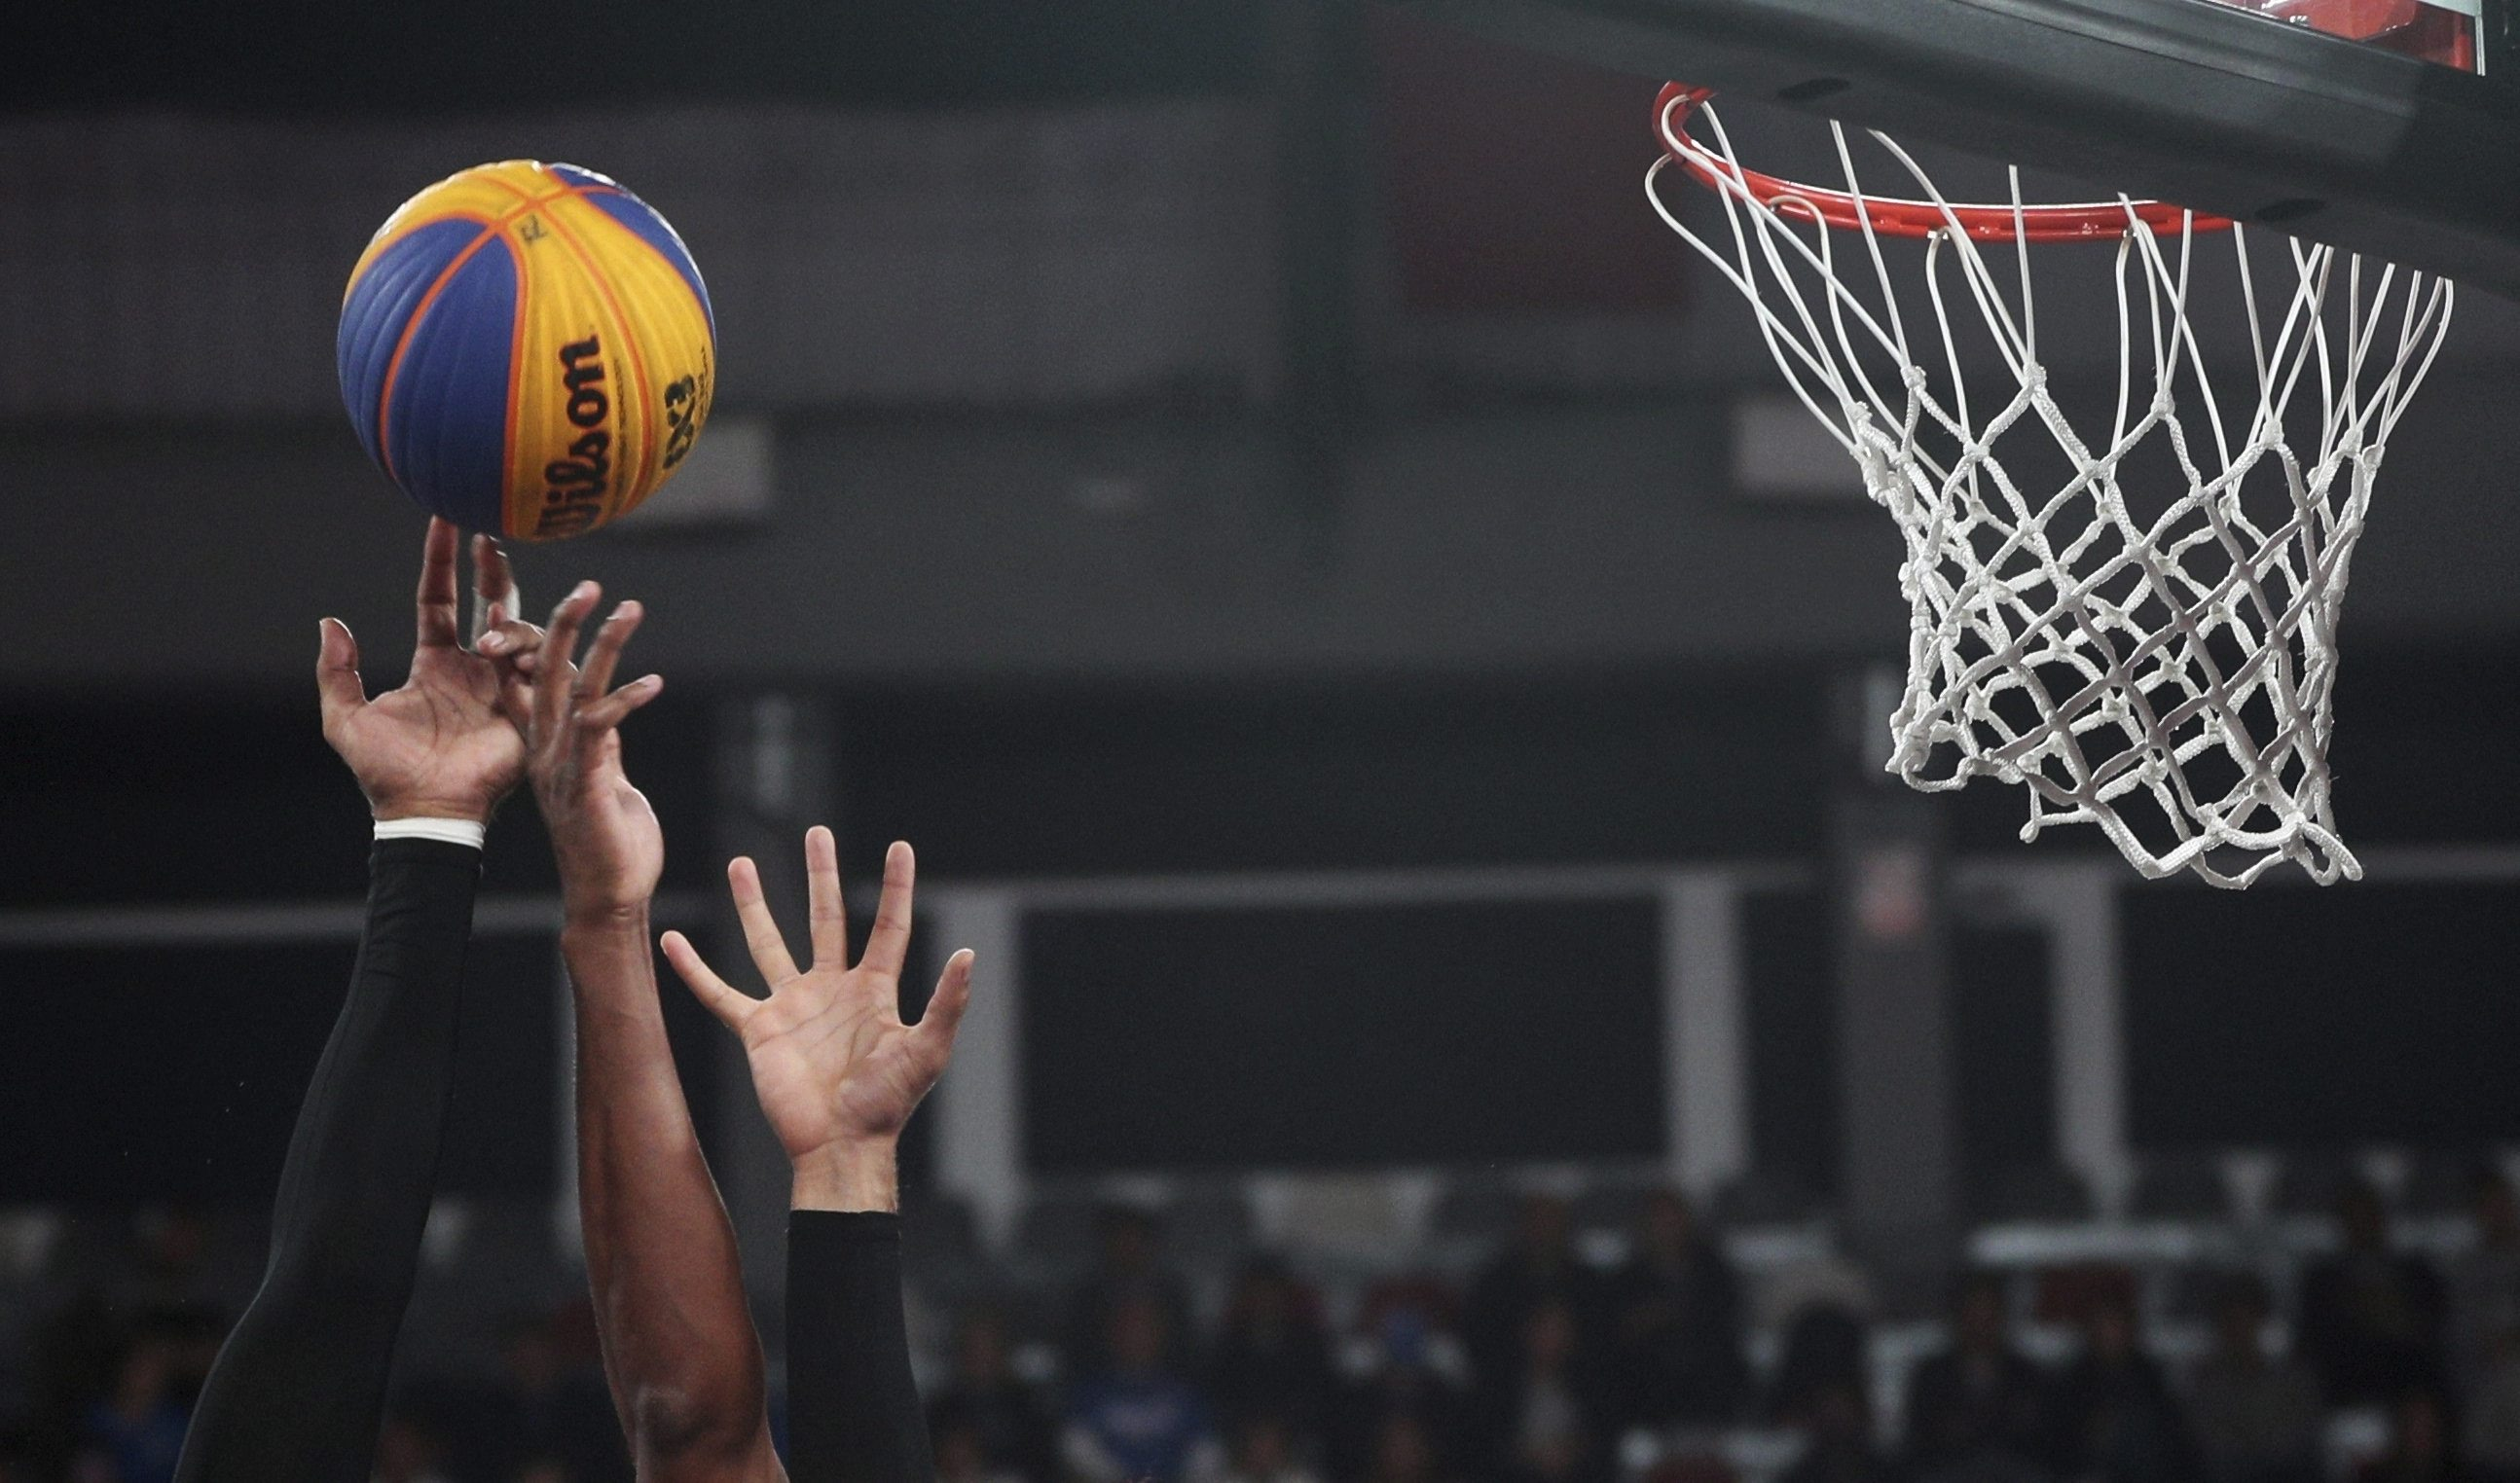 Teammates double up to block a shot during the men's basketball 3x3 semi-final match at the Pan American Games in Lima, Peru,